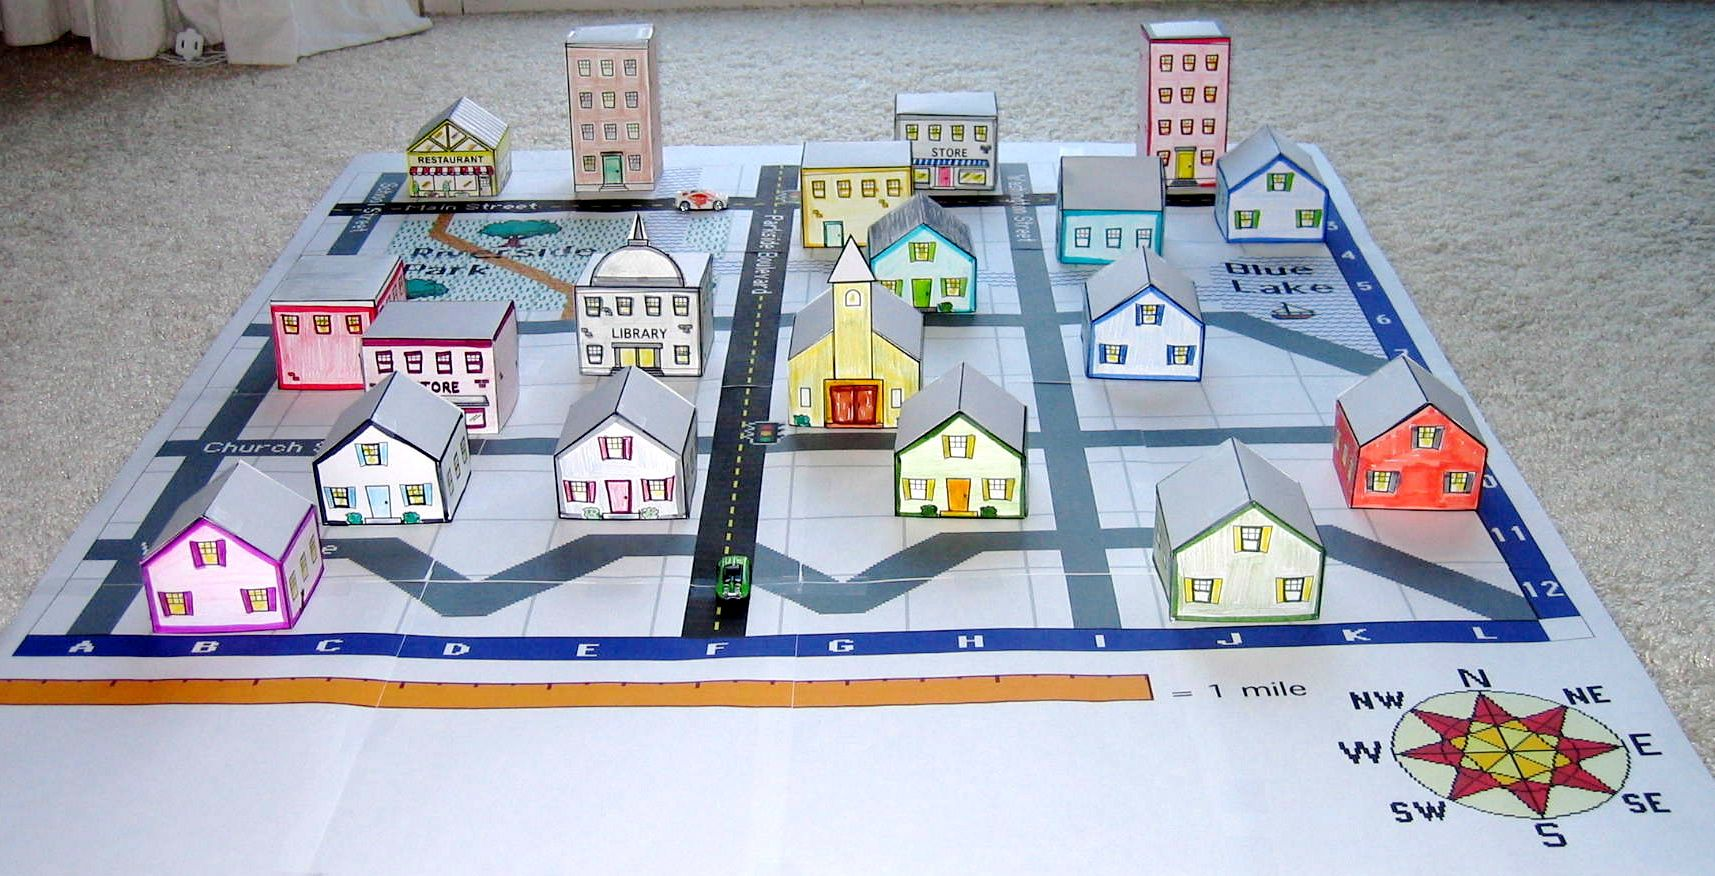 How To Build A 3d Town Should Fit Right Into Map Reading